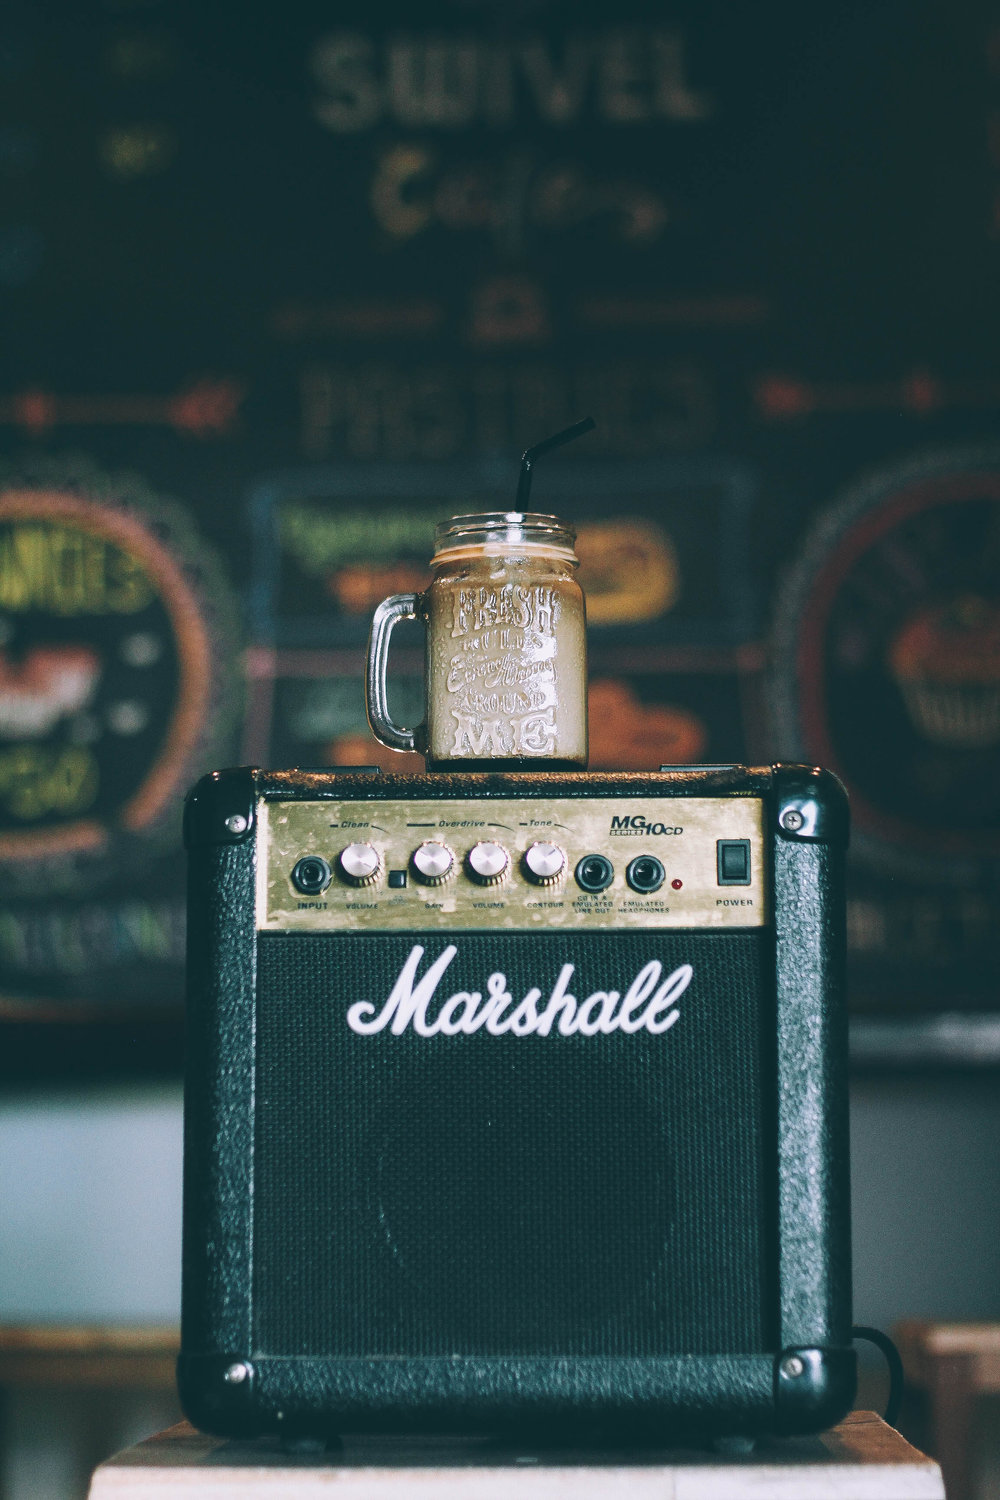 Marshall Speaker - Unsplash - pao-edu-103398.jpg